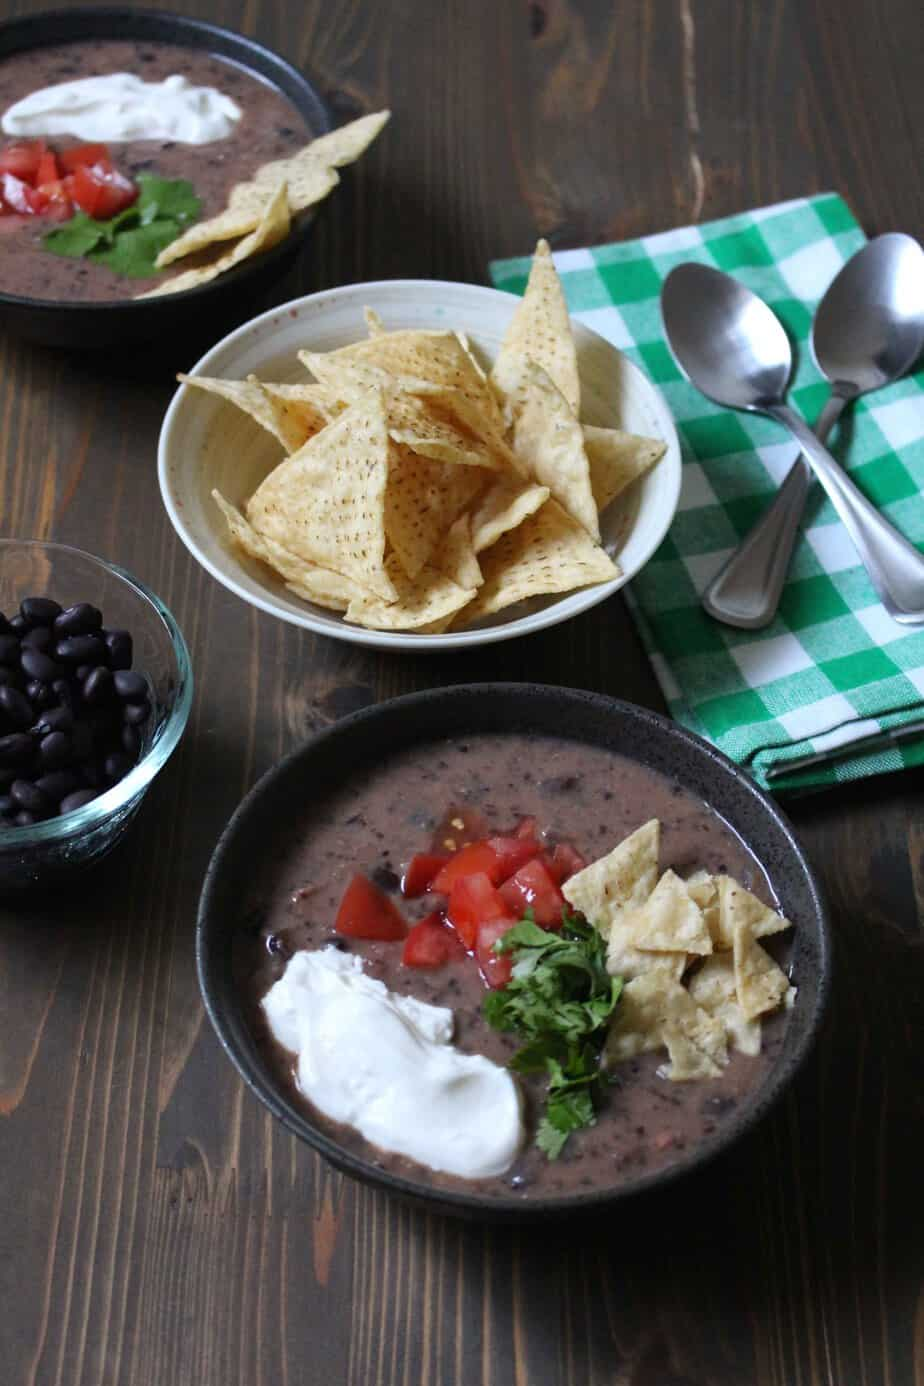 vegan-black-bean-soup-stove-top-or-slow-cooker-frugal-nutrition